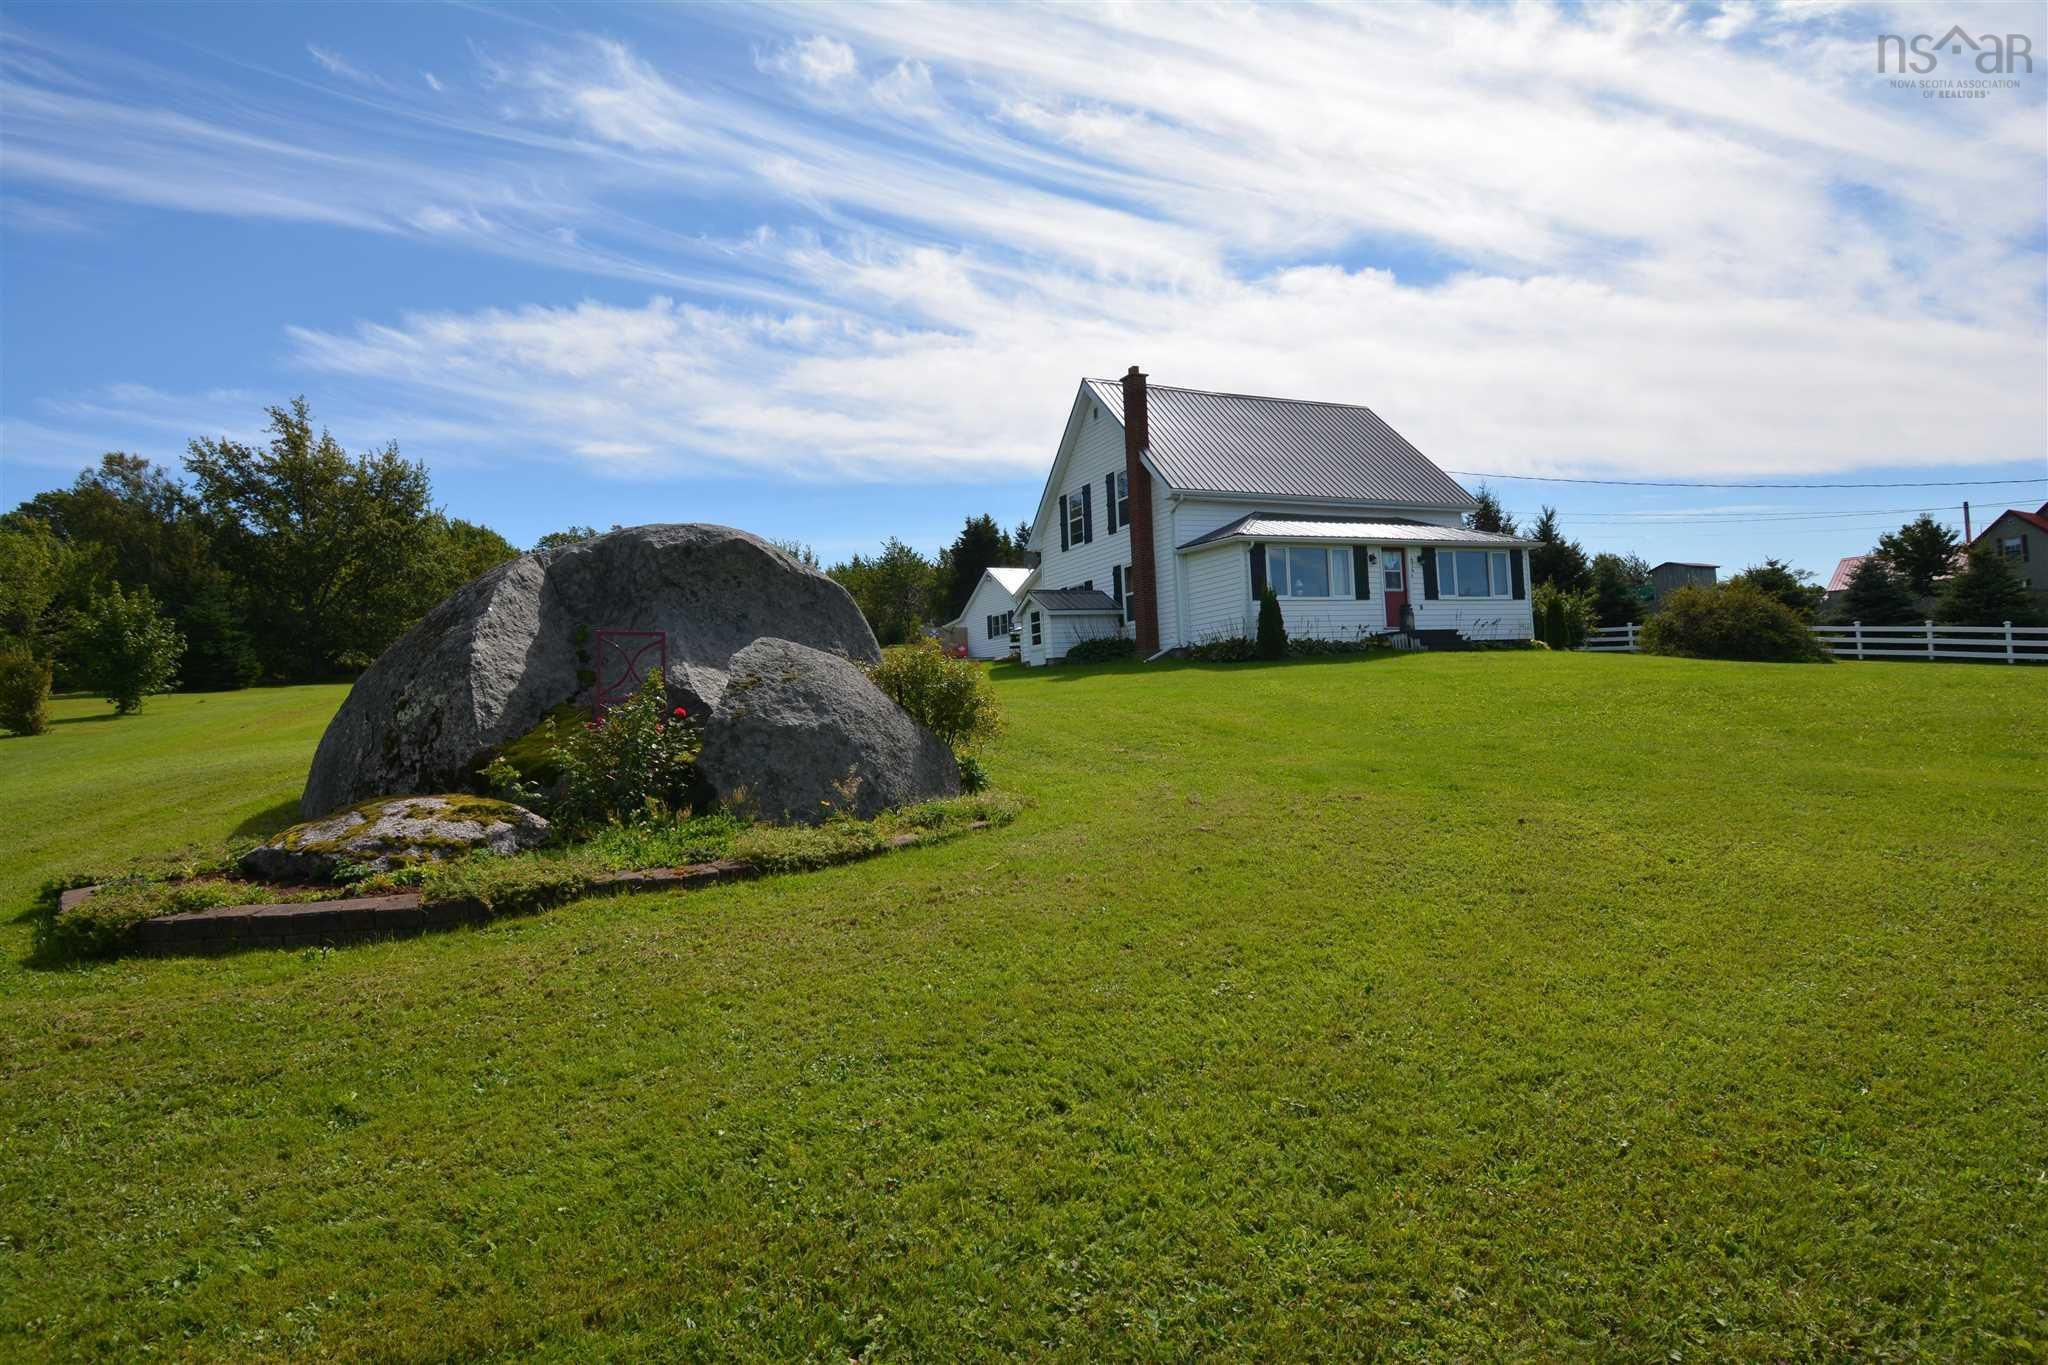 Main Photo: 676 Highway 201 in Moschelle: 400-Annapolis County Residential for sale (Annapolis Valley)  : MLS®# 202123426